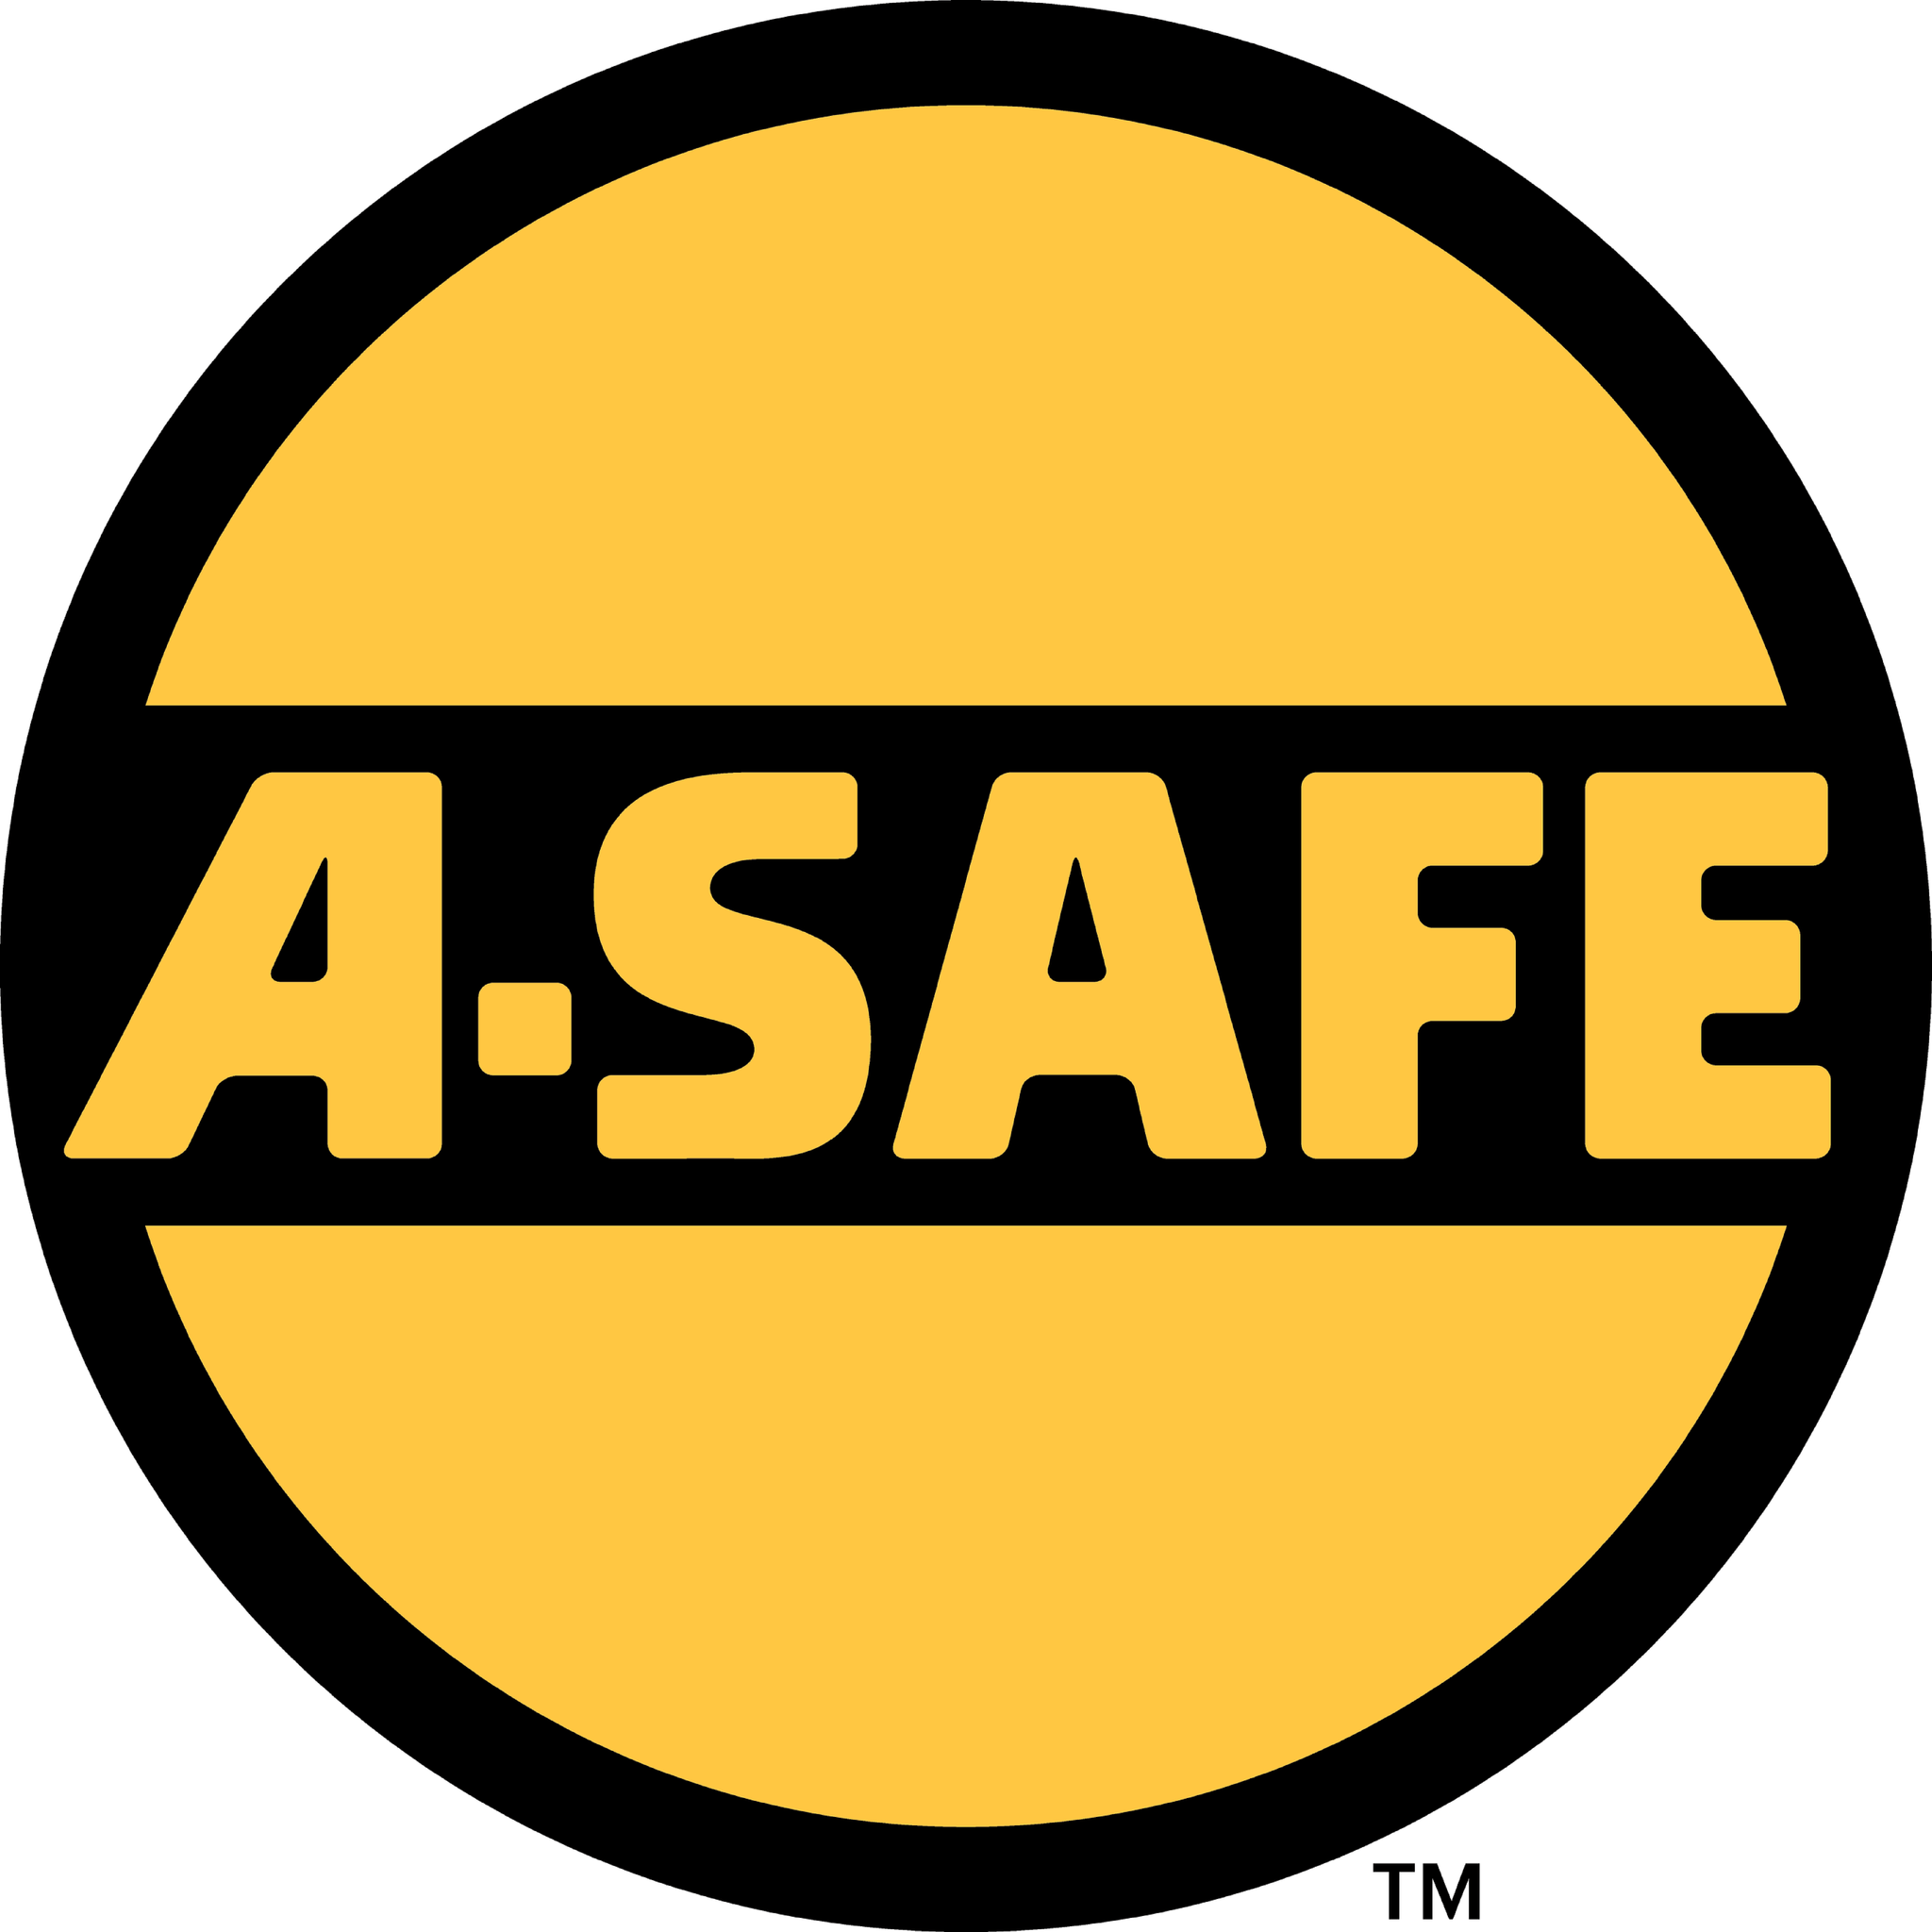 A-Safe HQ Ltd